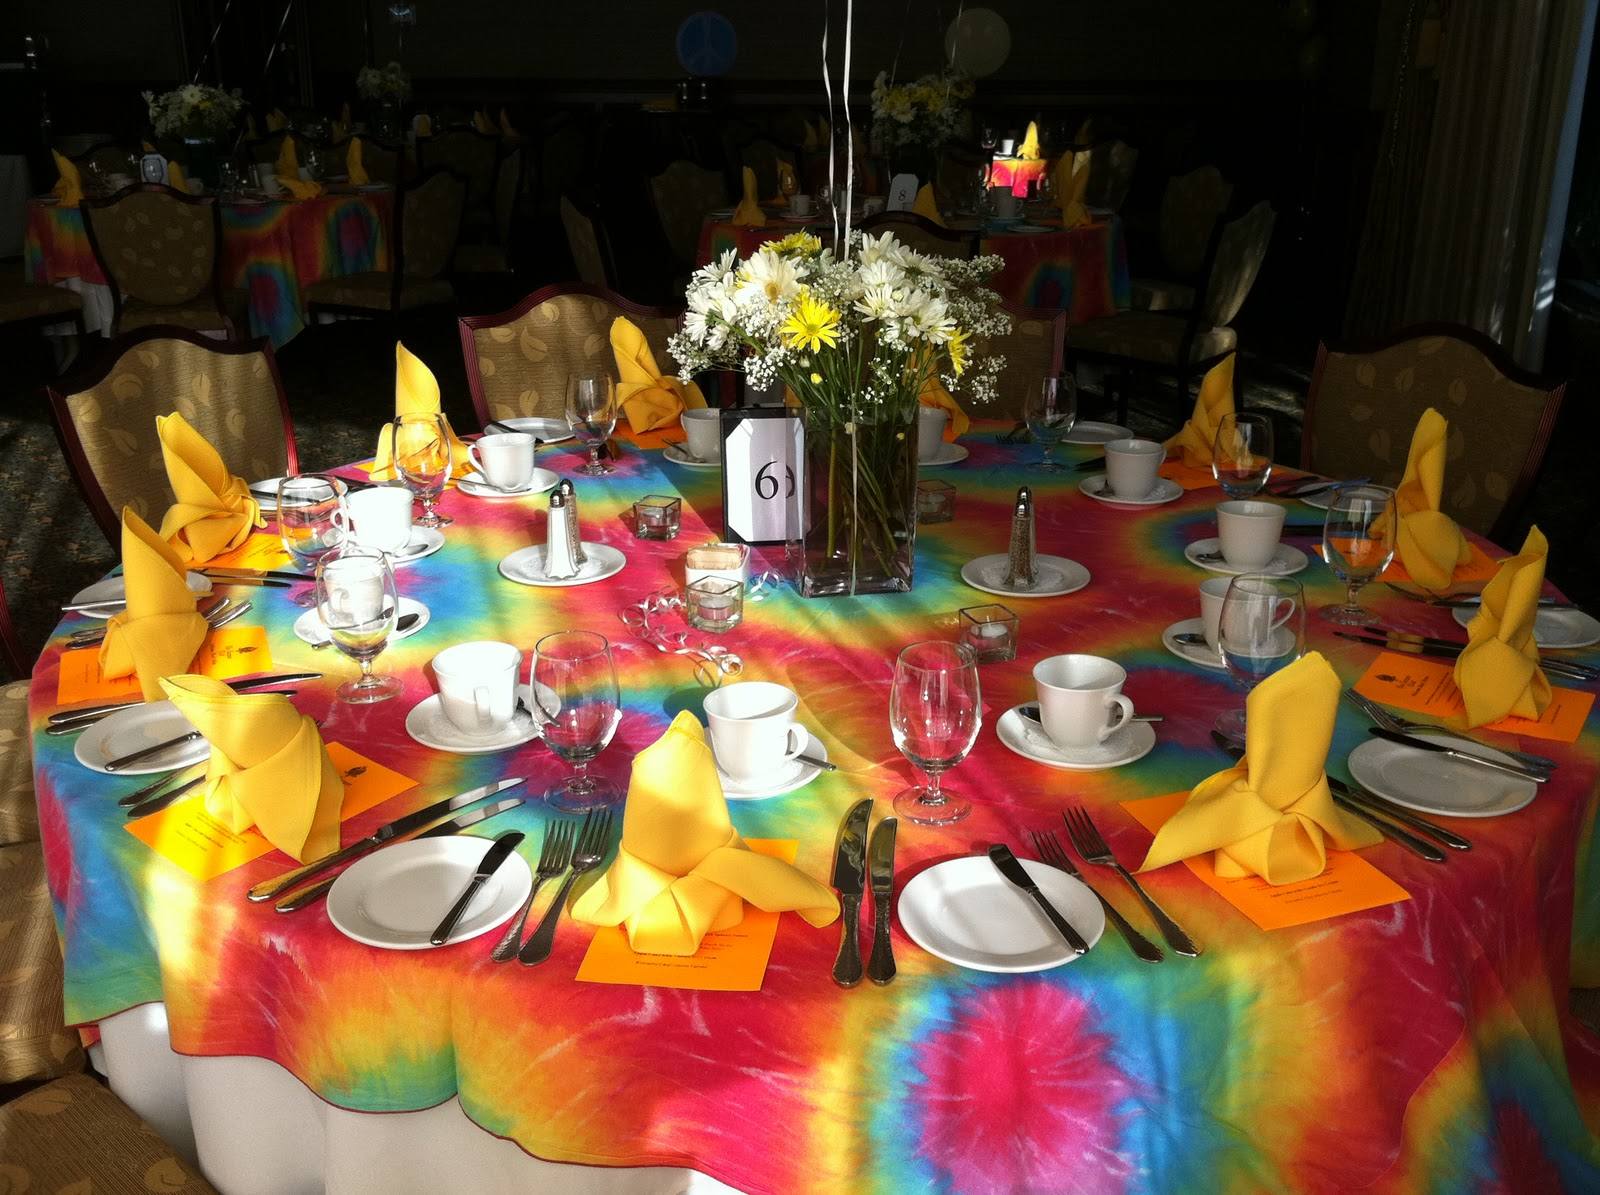 60s party on pinterest 60s party themes hippie birthday for 60s party decoration ideas